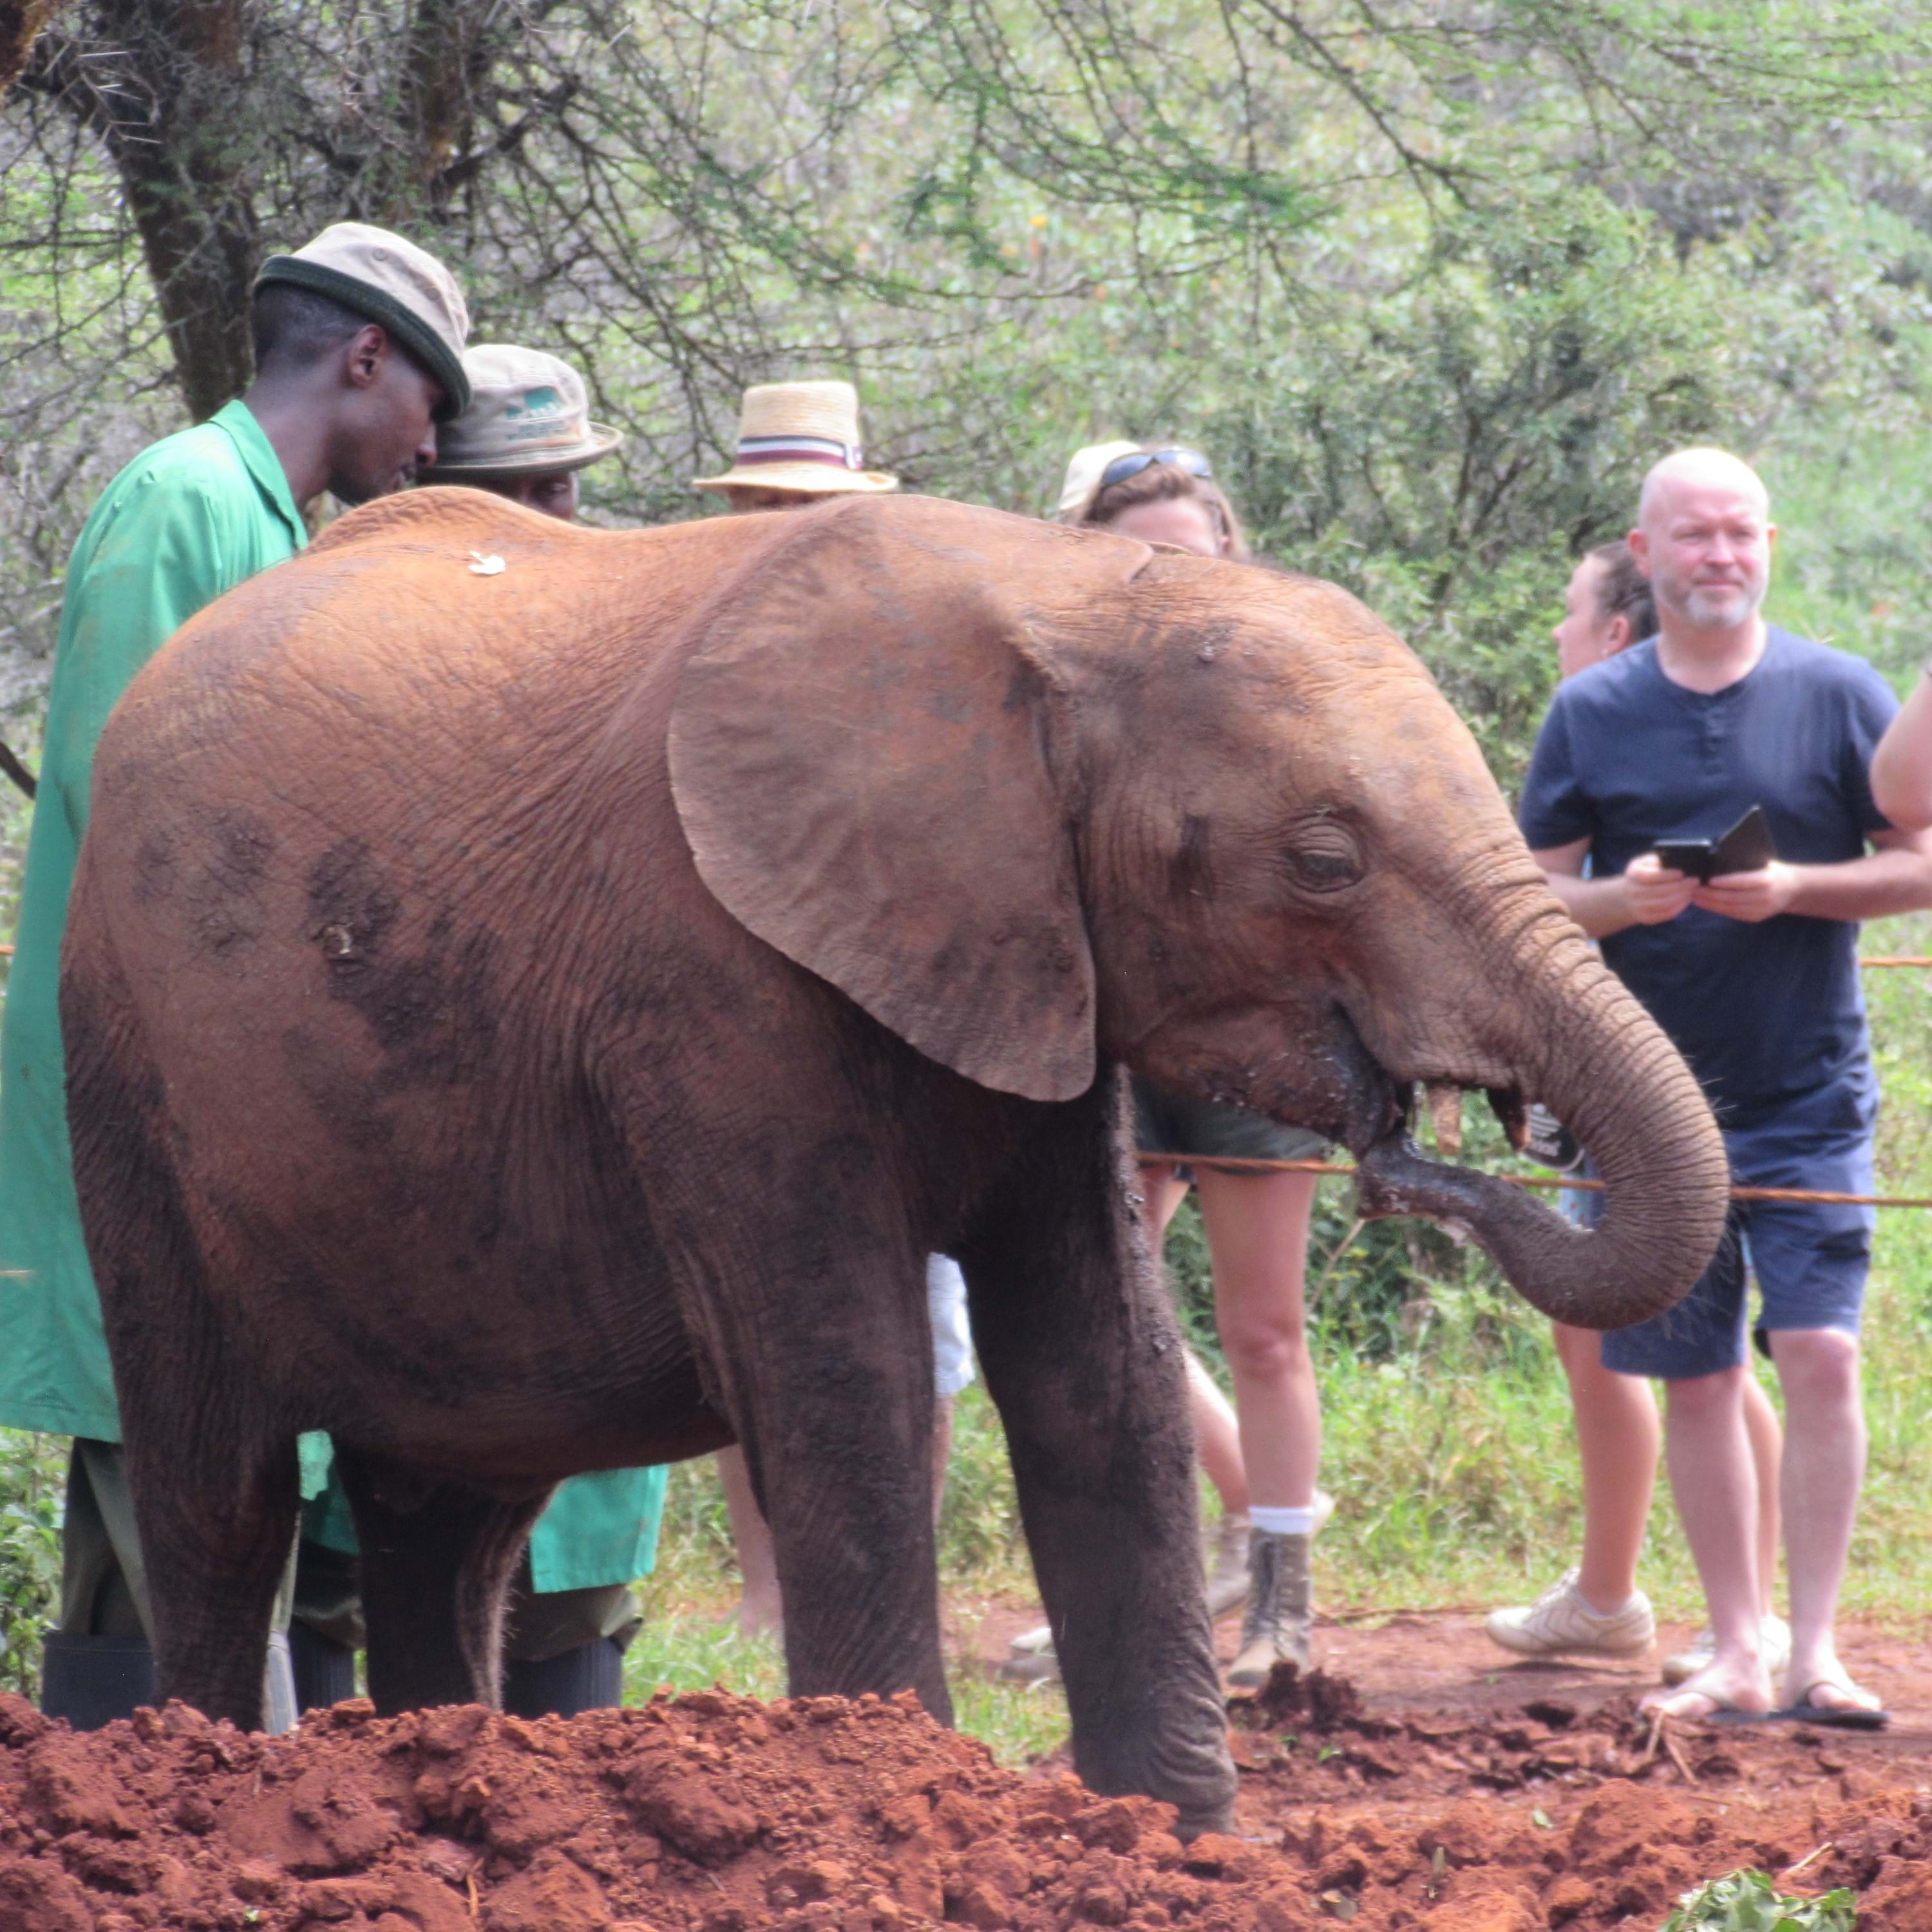 Isobel Ripley's adopted elephant at the Sheldrick Wildlife Trust in Nairobi